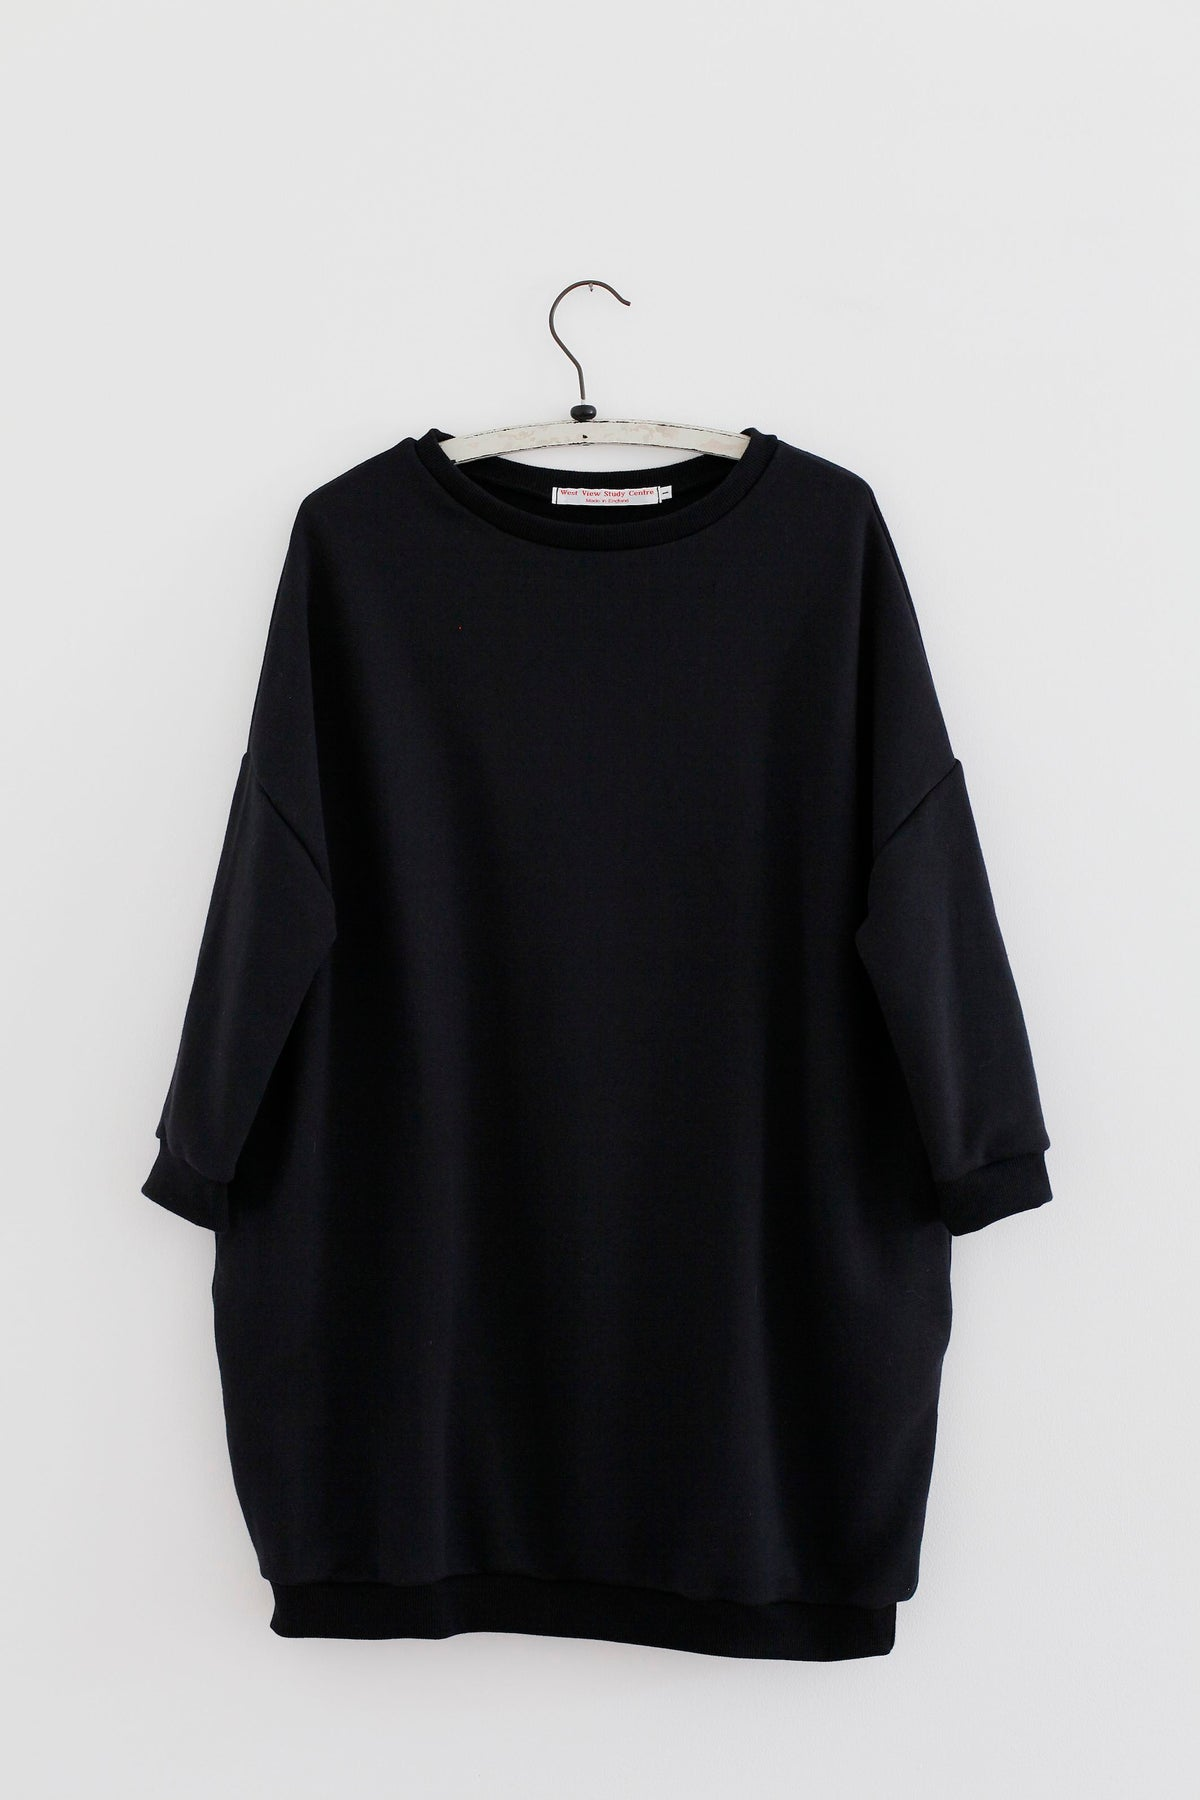 Image of Mid length Oversized Sweatshirt